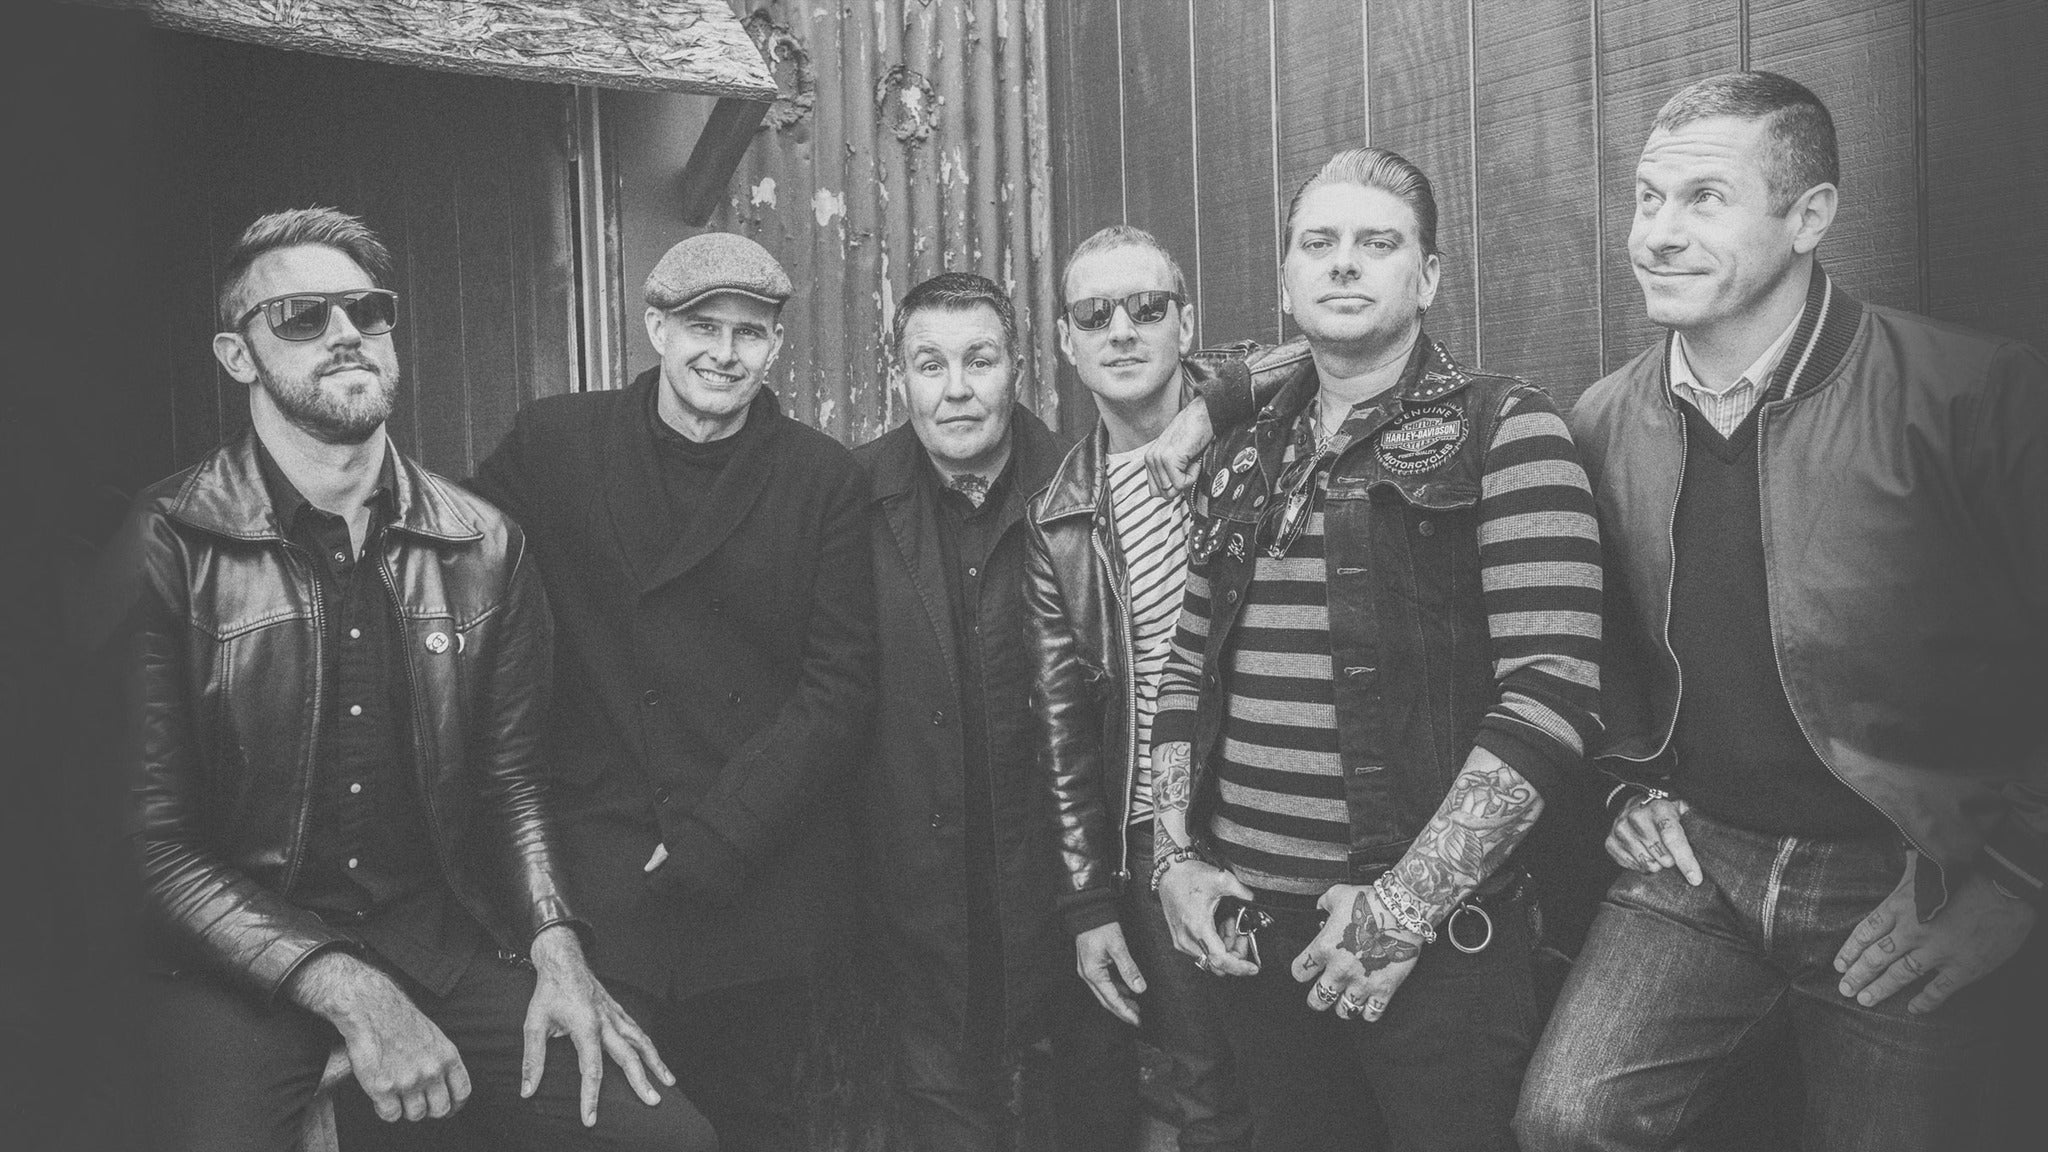 89.7 The River Mega Fest w/ Dropkick Murphys, Clutch, and many more